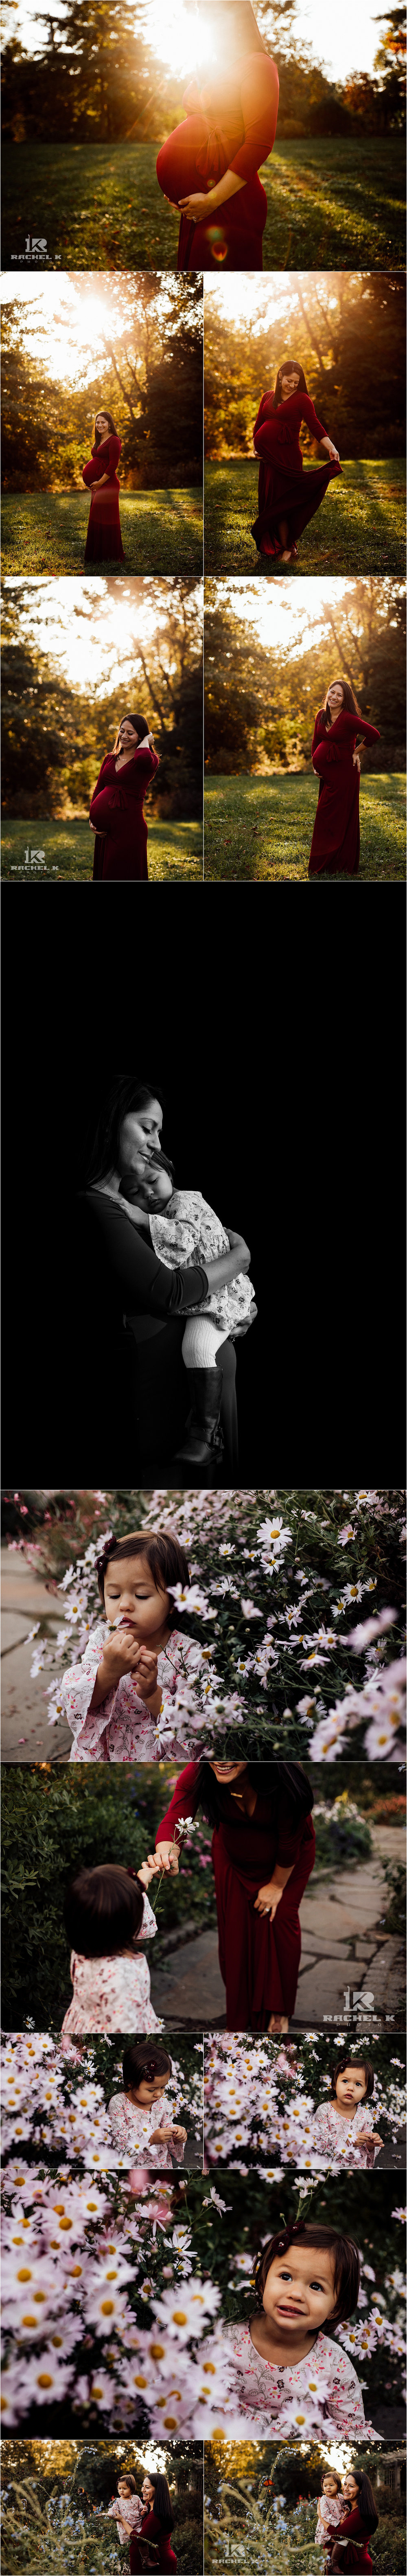 Fairfax Virginia maternity session by Rachel K Photo